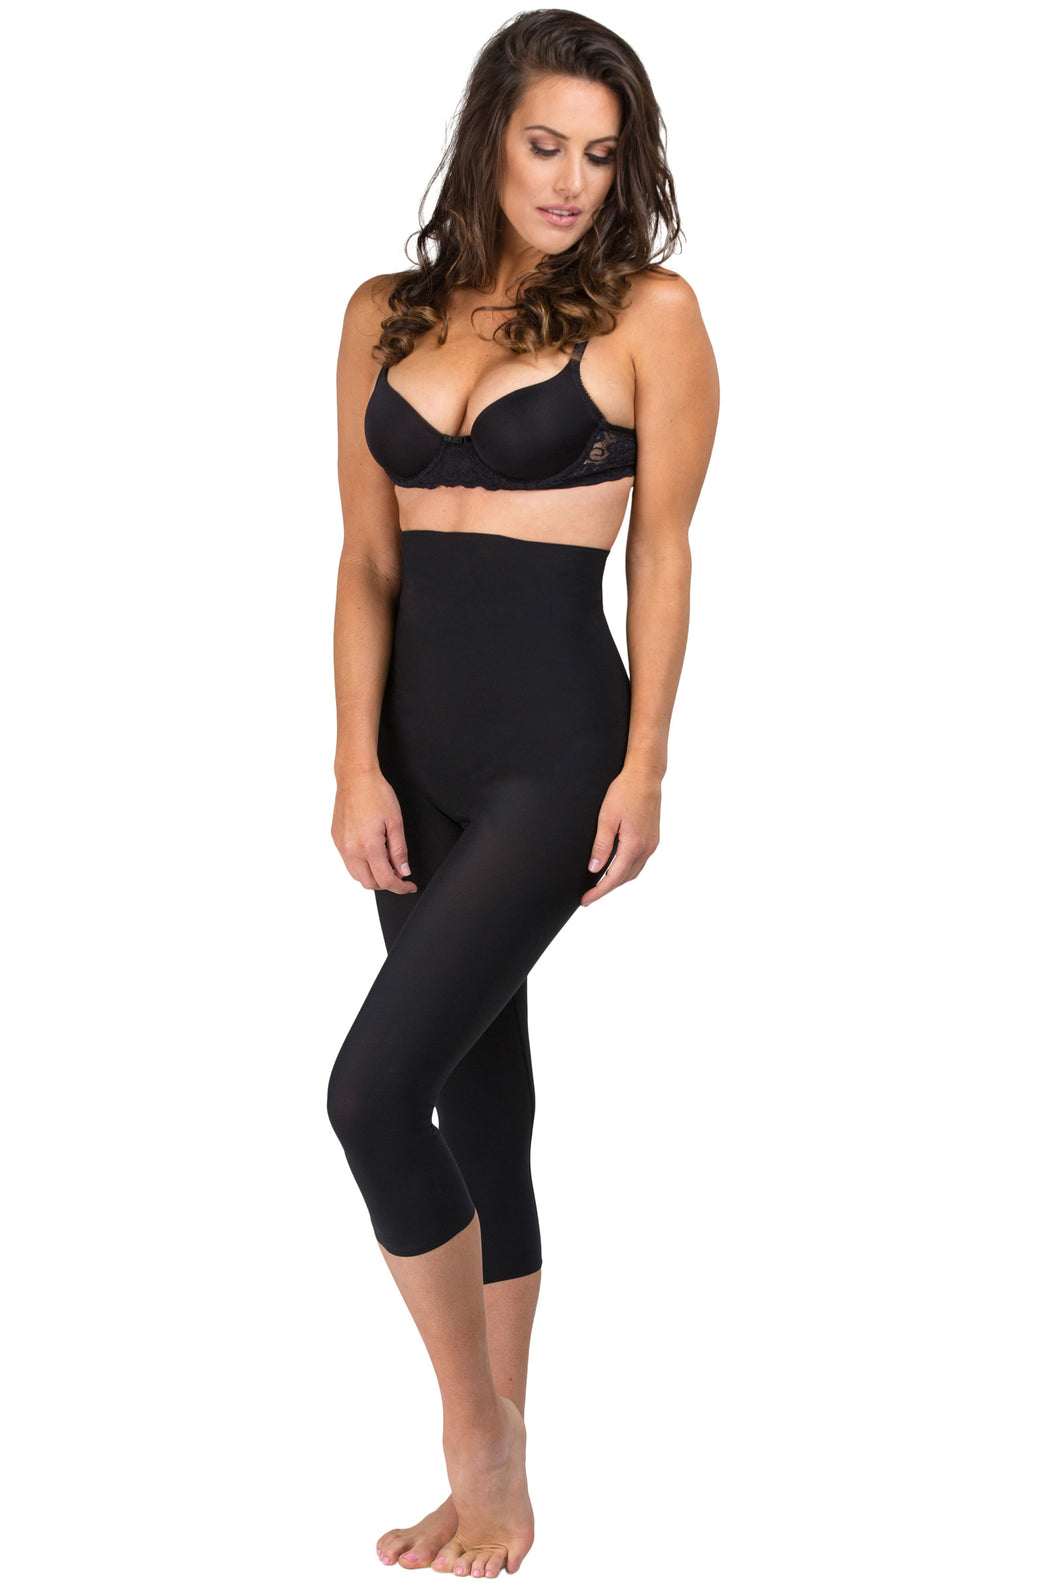 Body Slimming High Waist Capris - Black